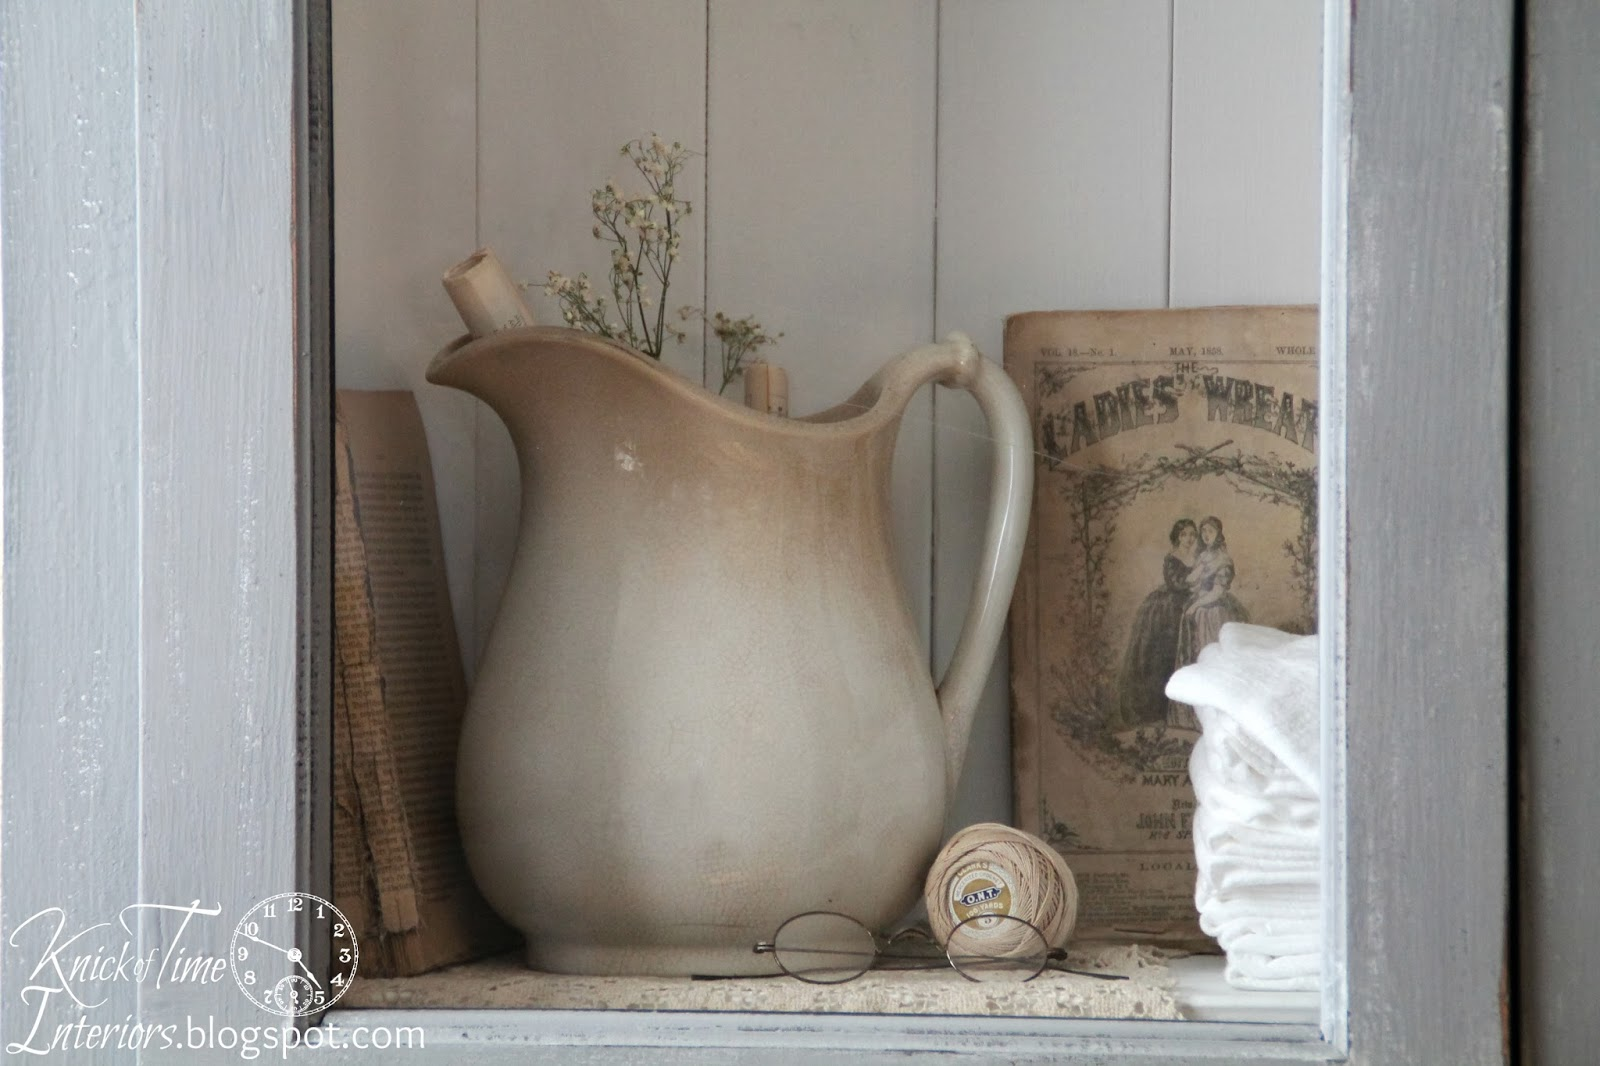 Ironstone, antique books, antique spectacles and flour sack towels inside cupboard via Knick of Time